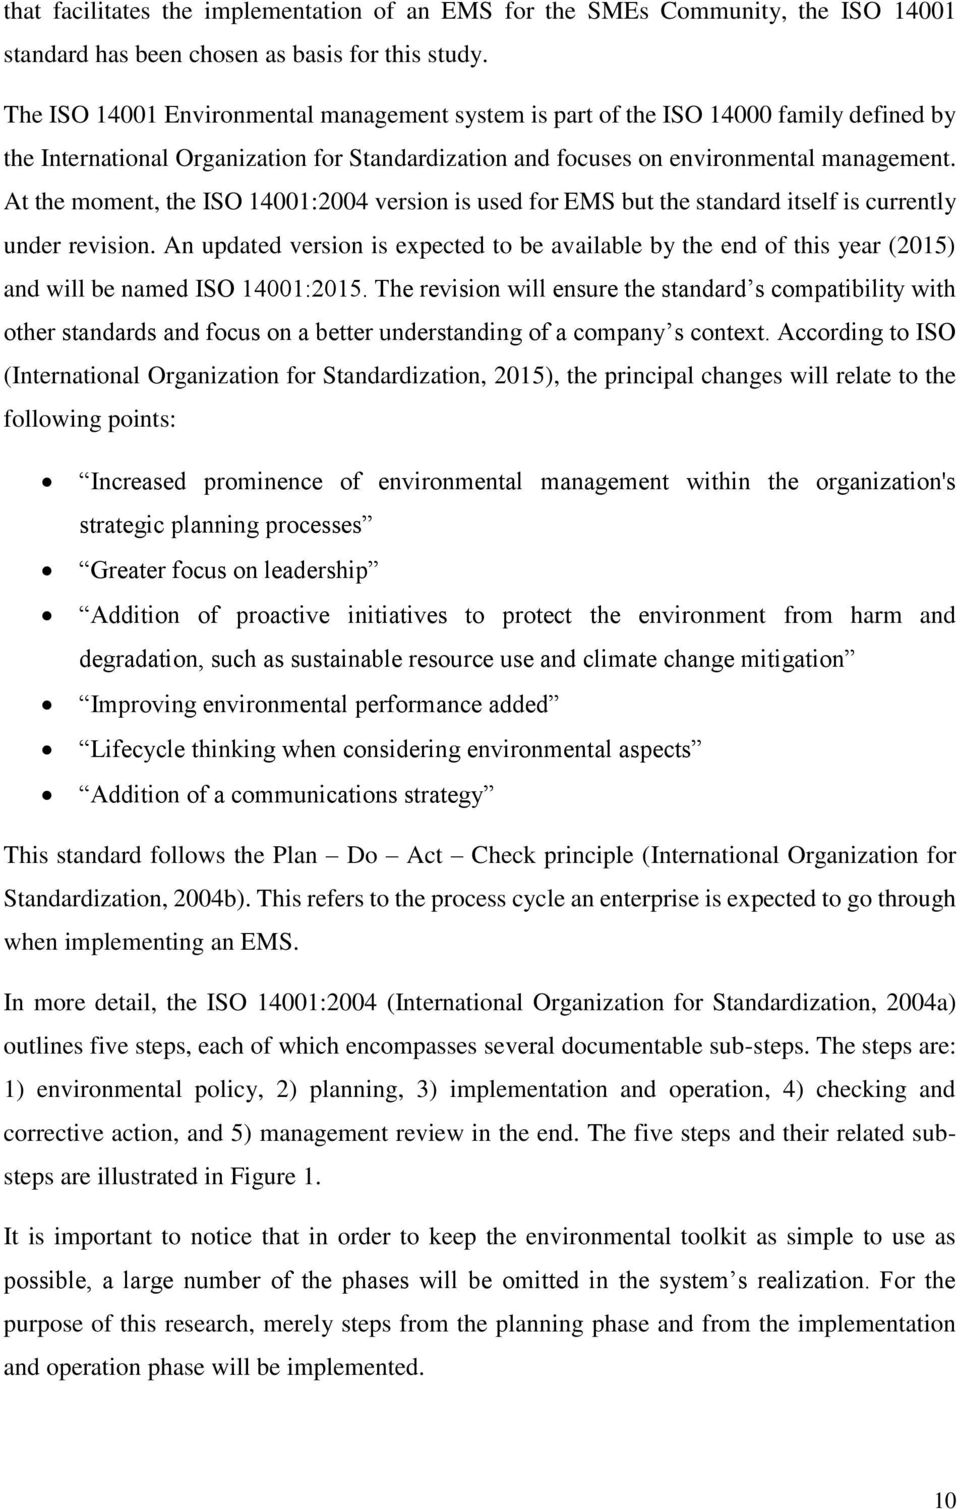 At the moment, the ISO 14001:2004 version is used for EMS but the standard itself is currently under revision.